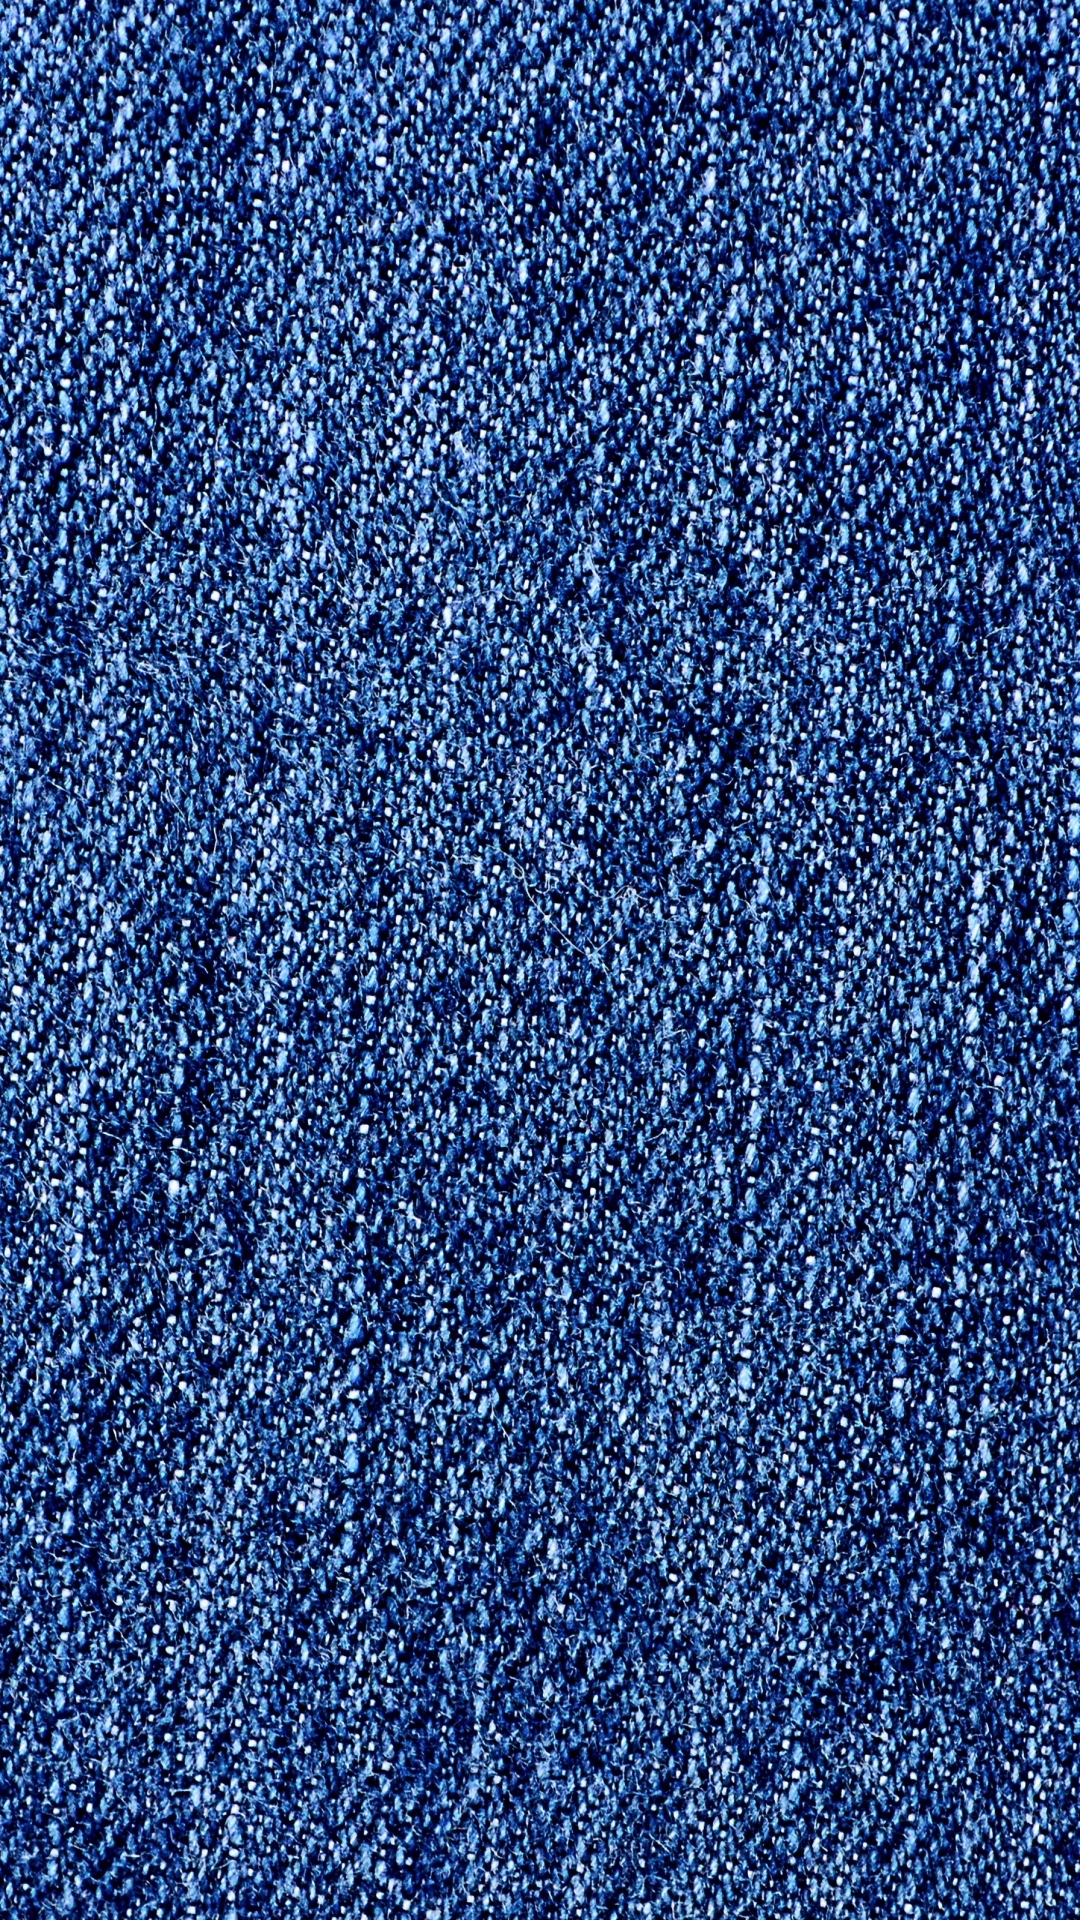 Pattern Denim 1080x1920 Mobile Wallpaper